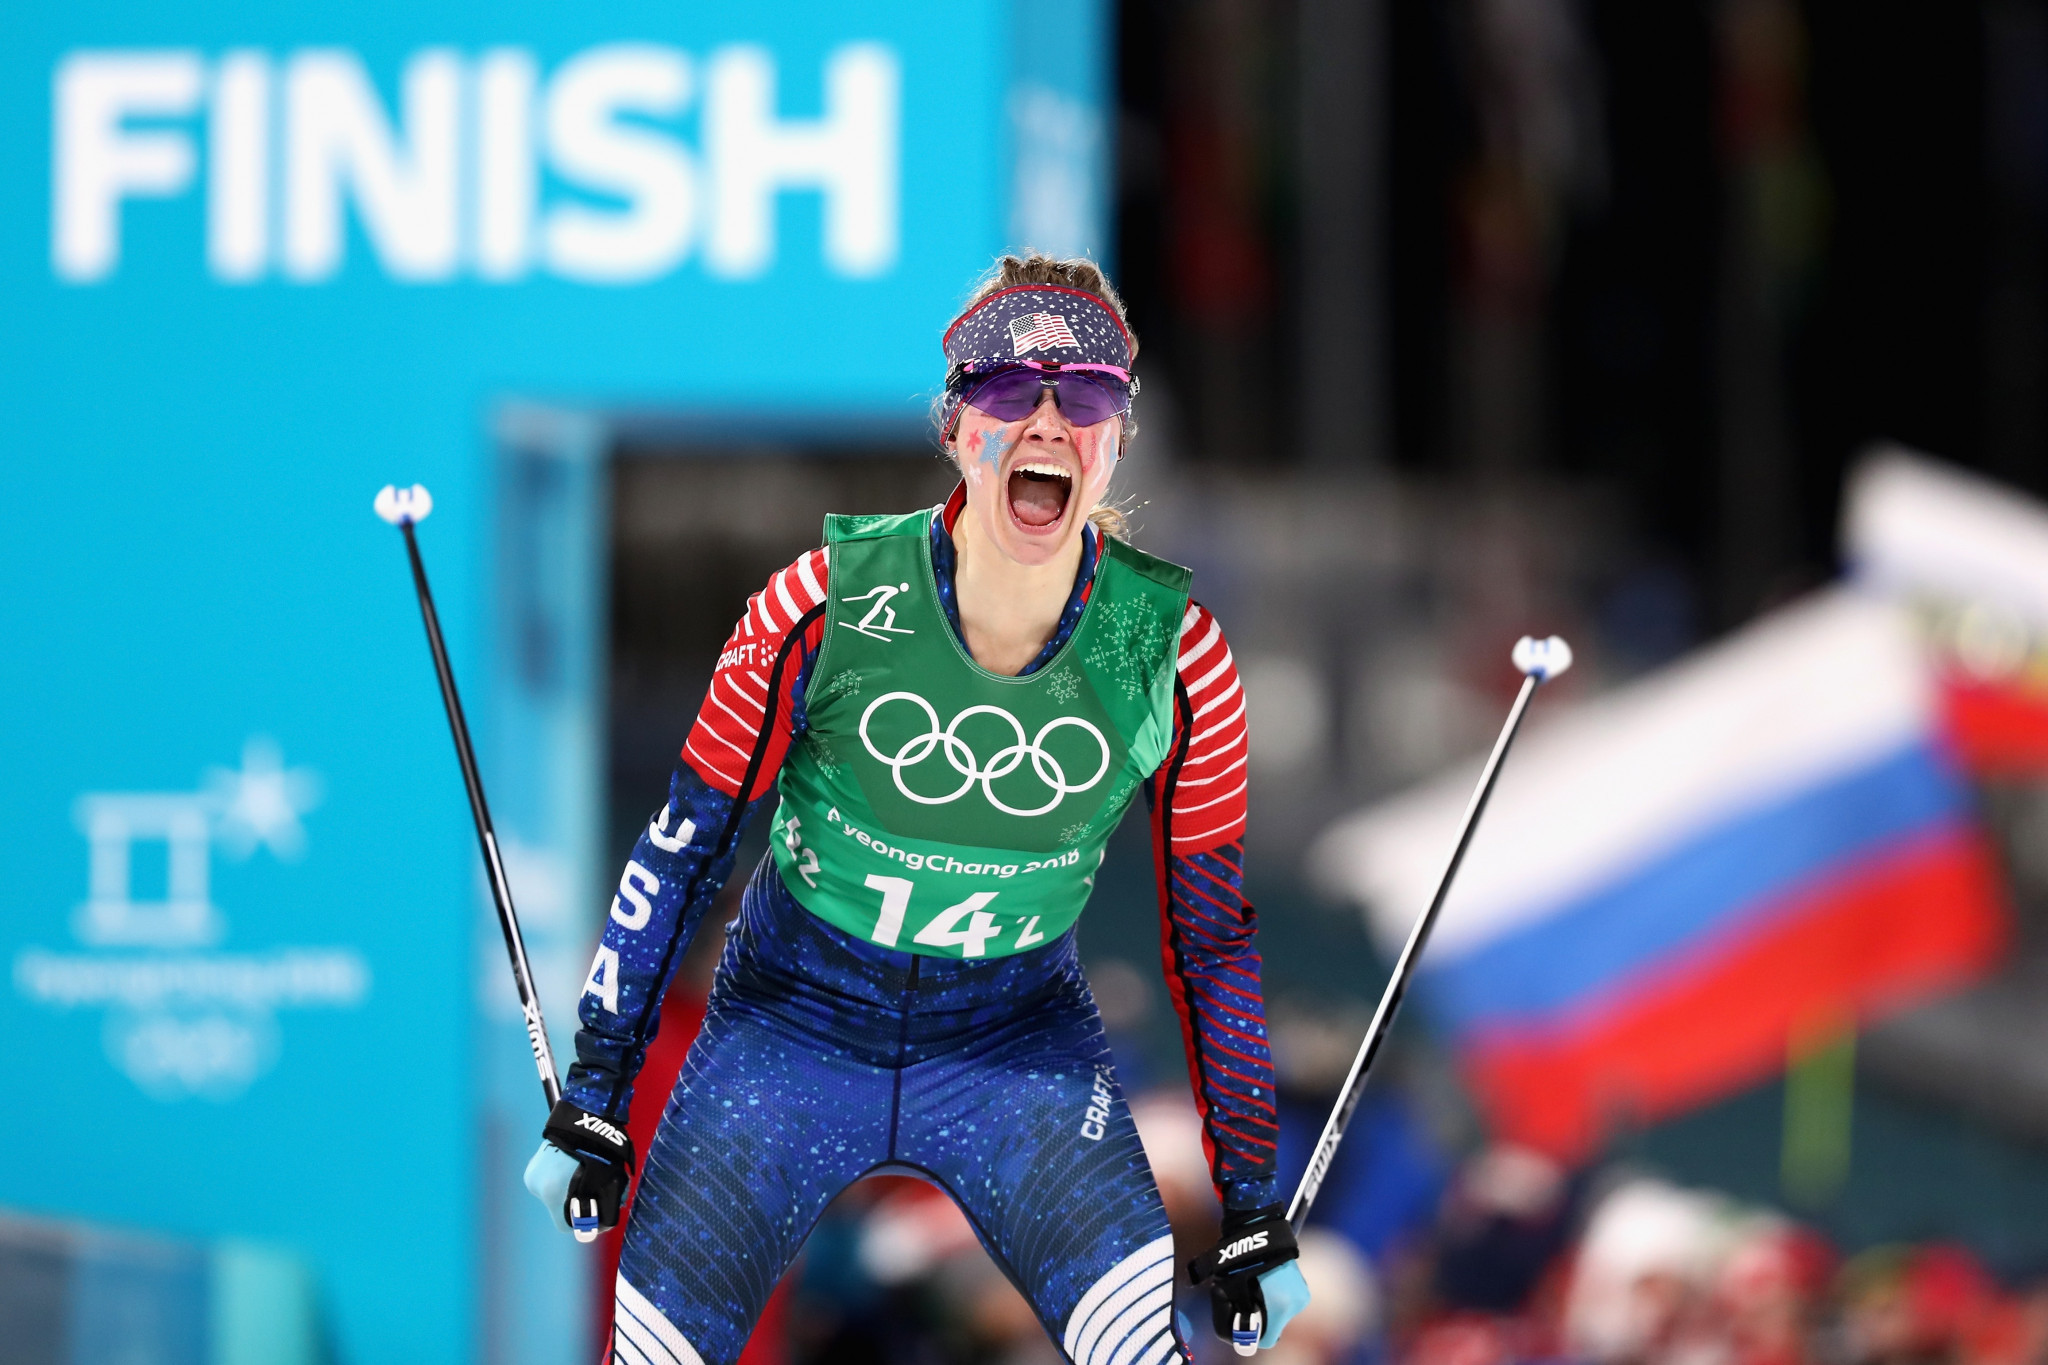 Jessica Diggins has won her seventh FIS World Cup race of her career ©Getty Images